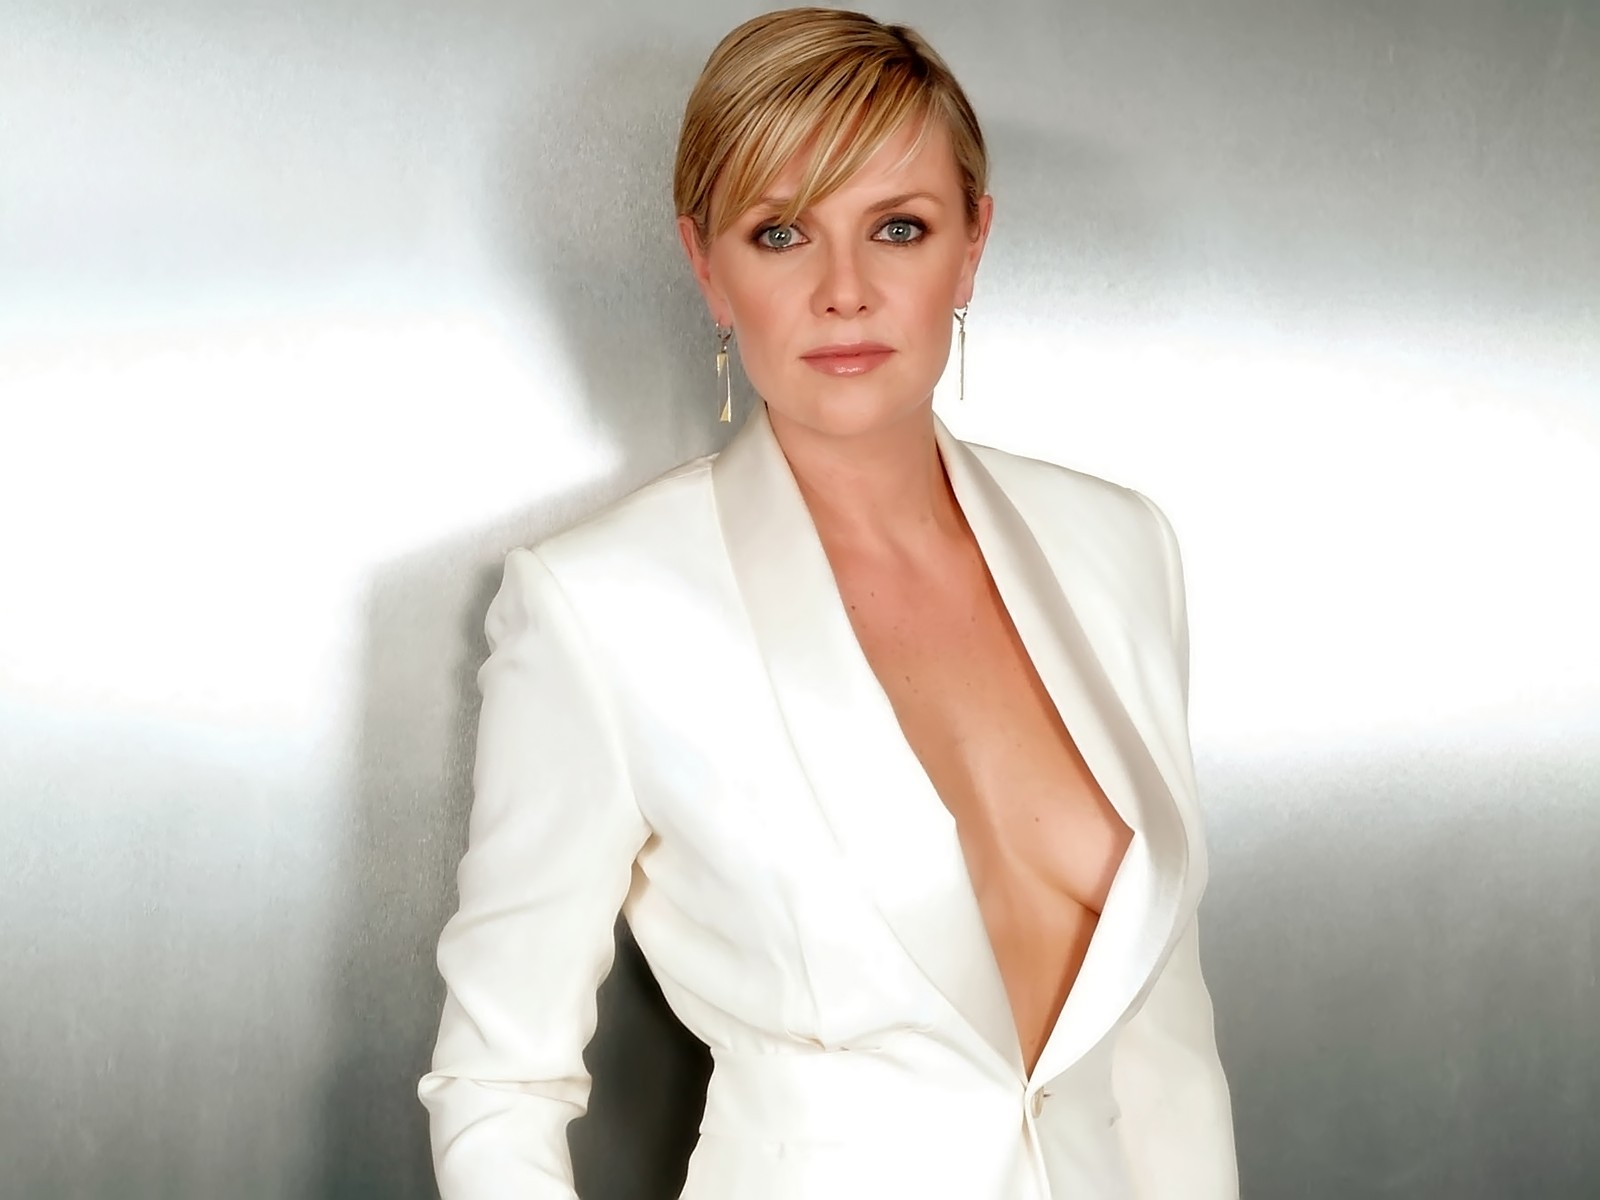 celebrities amanda tapping. Black Bedroom Furniture Sets. Home Design Ideas